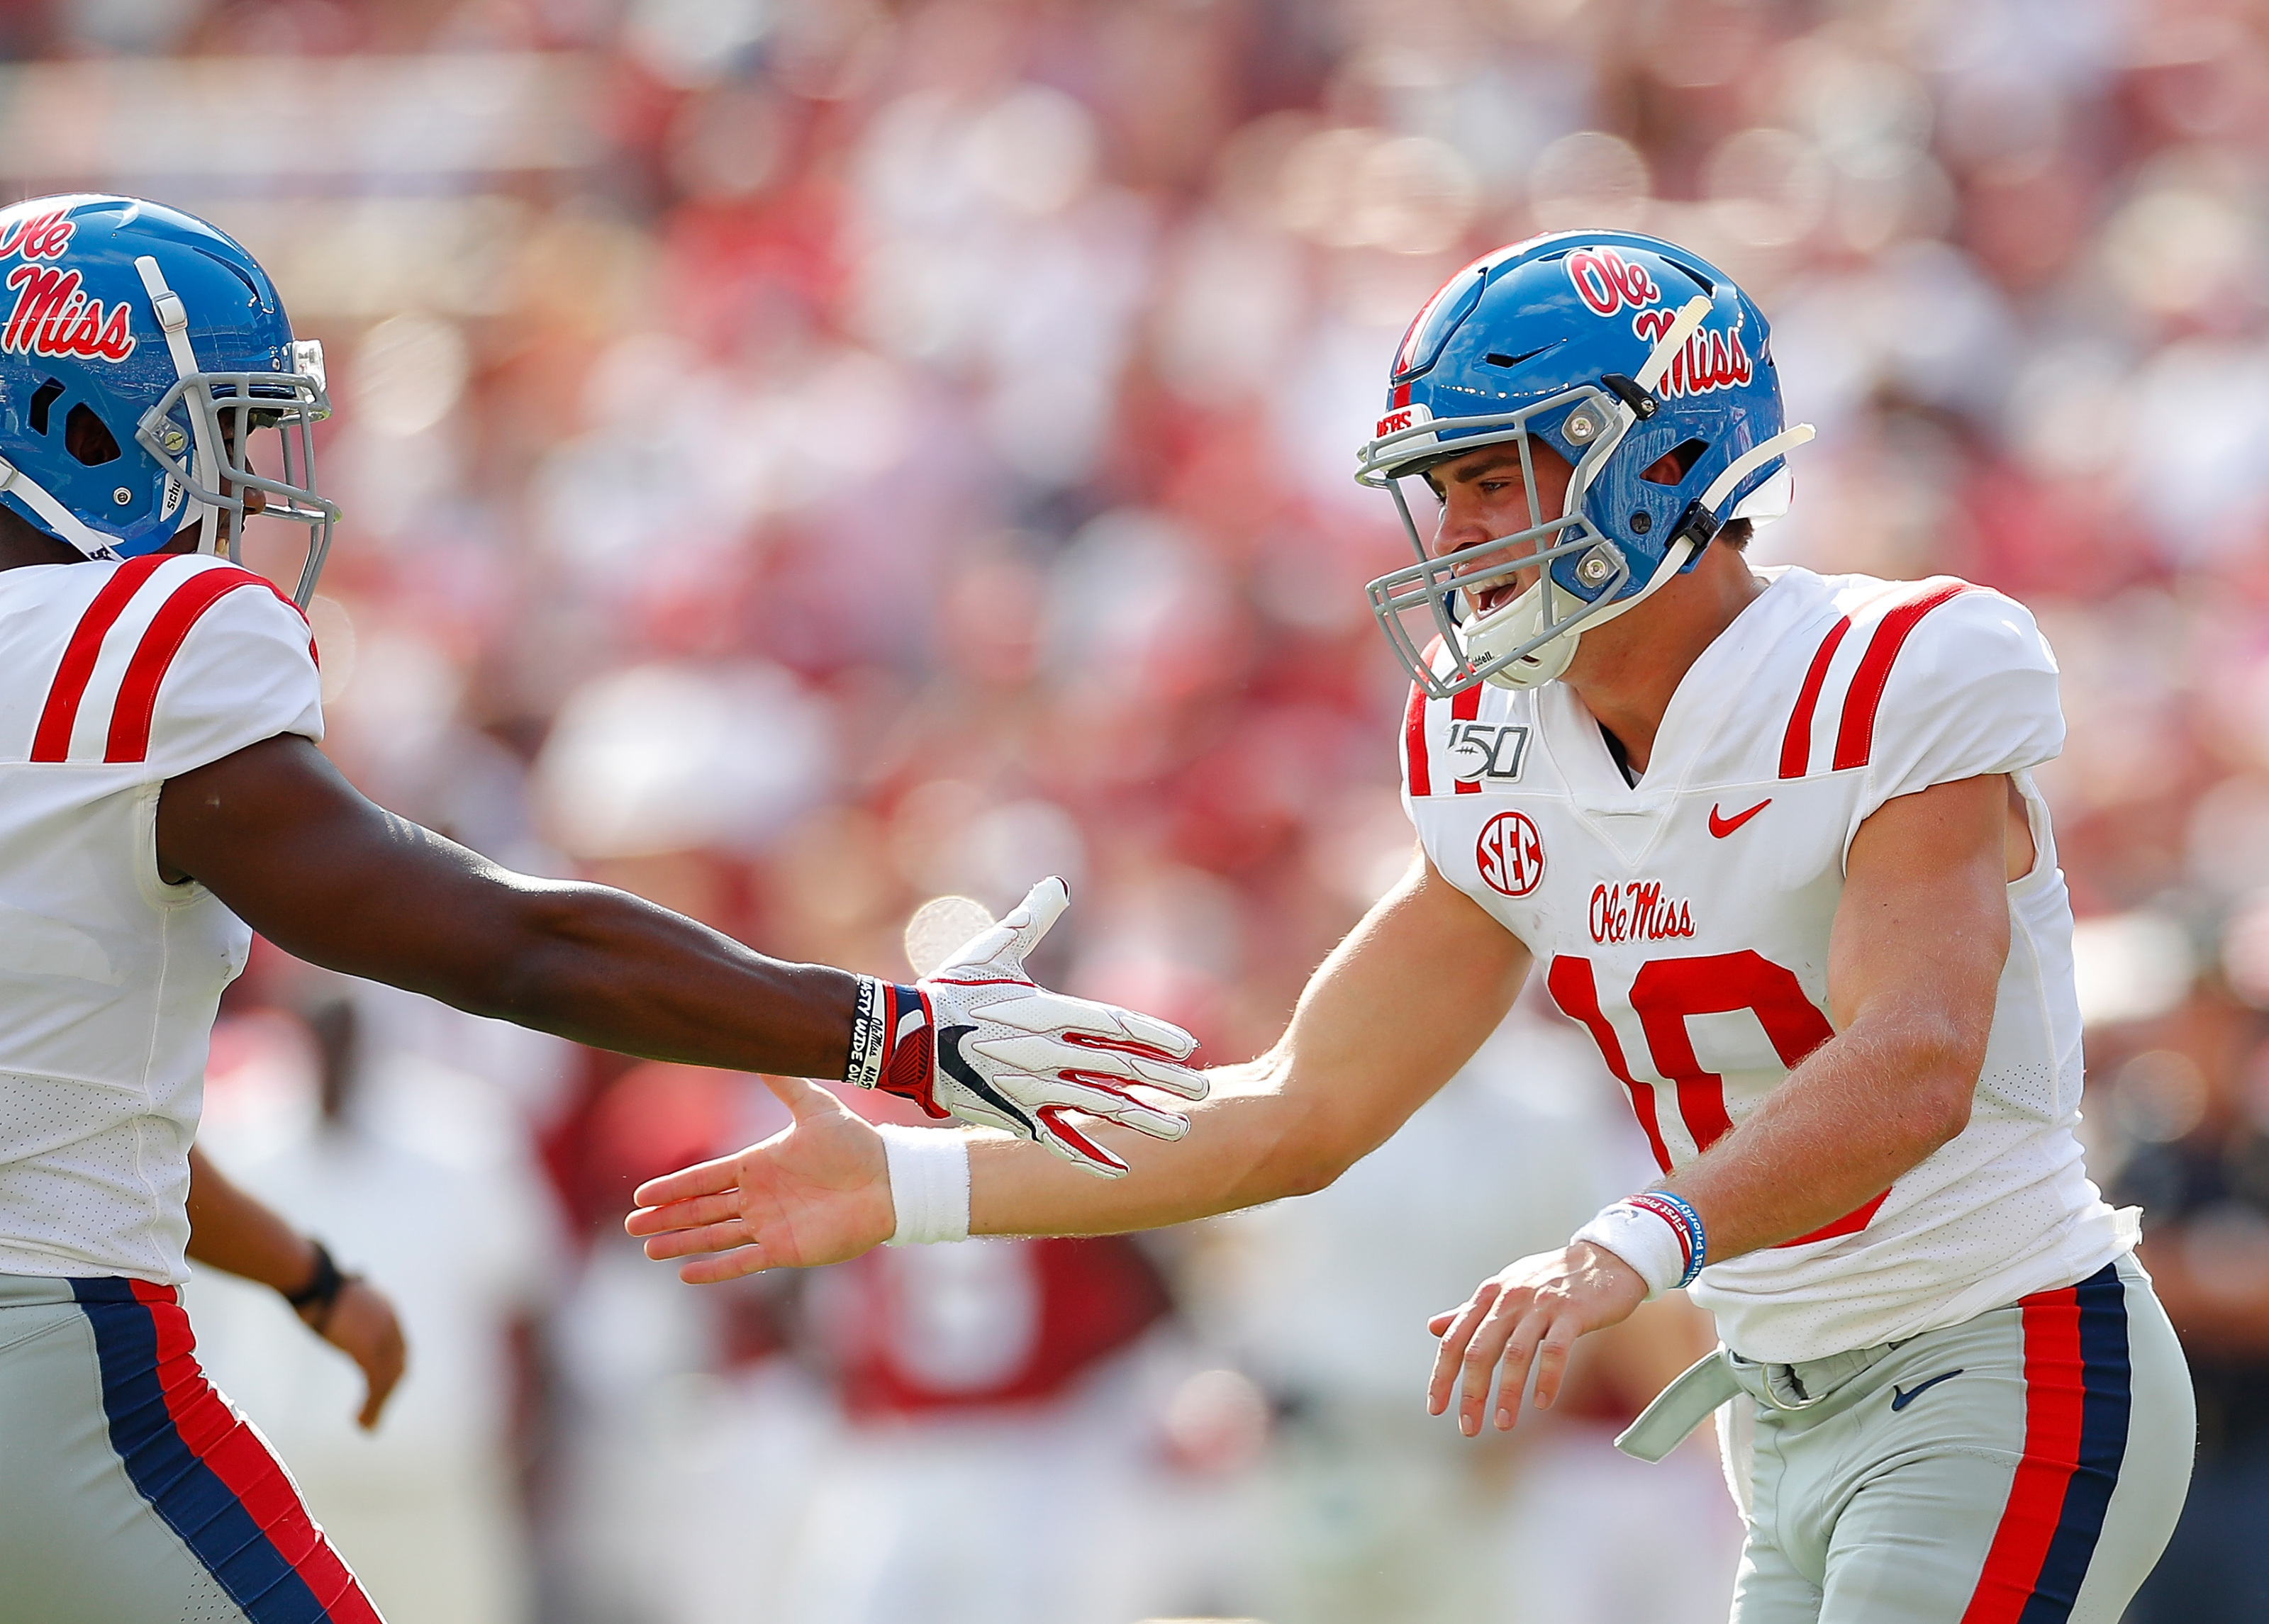 Ole Miss Football Trio Of Kiffin Plumlee And Moore Could Be Lethal